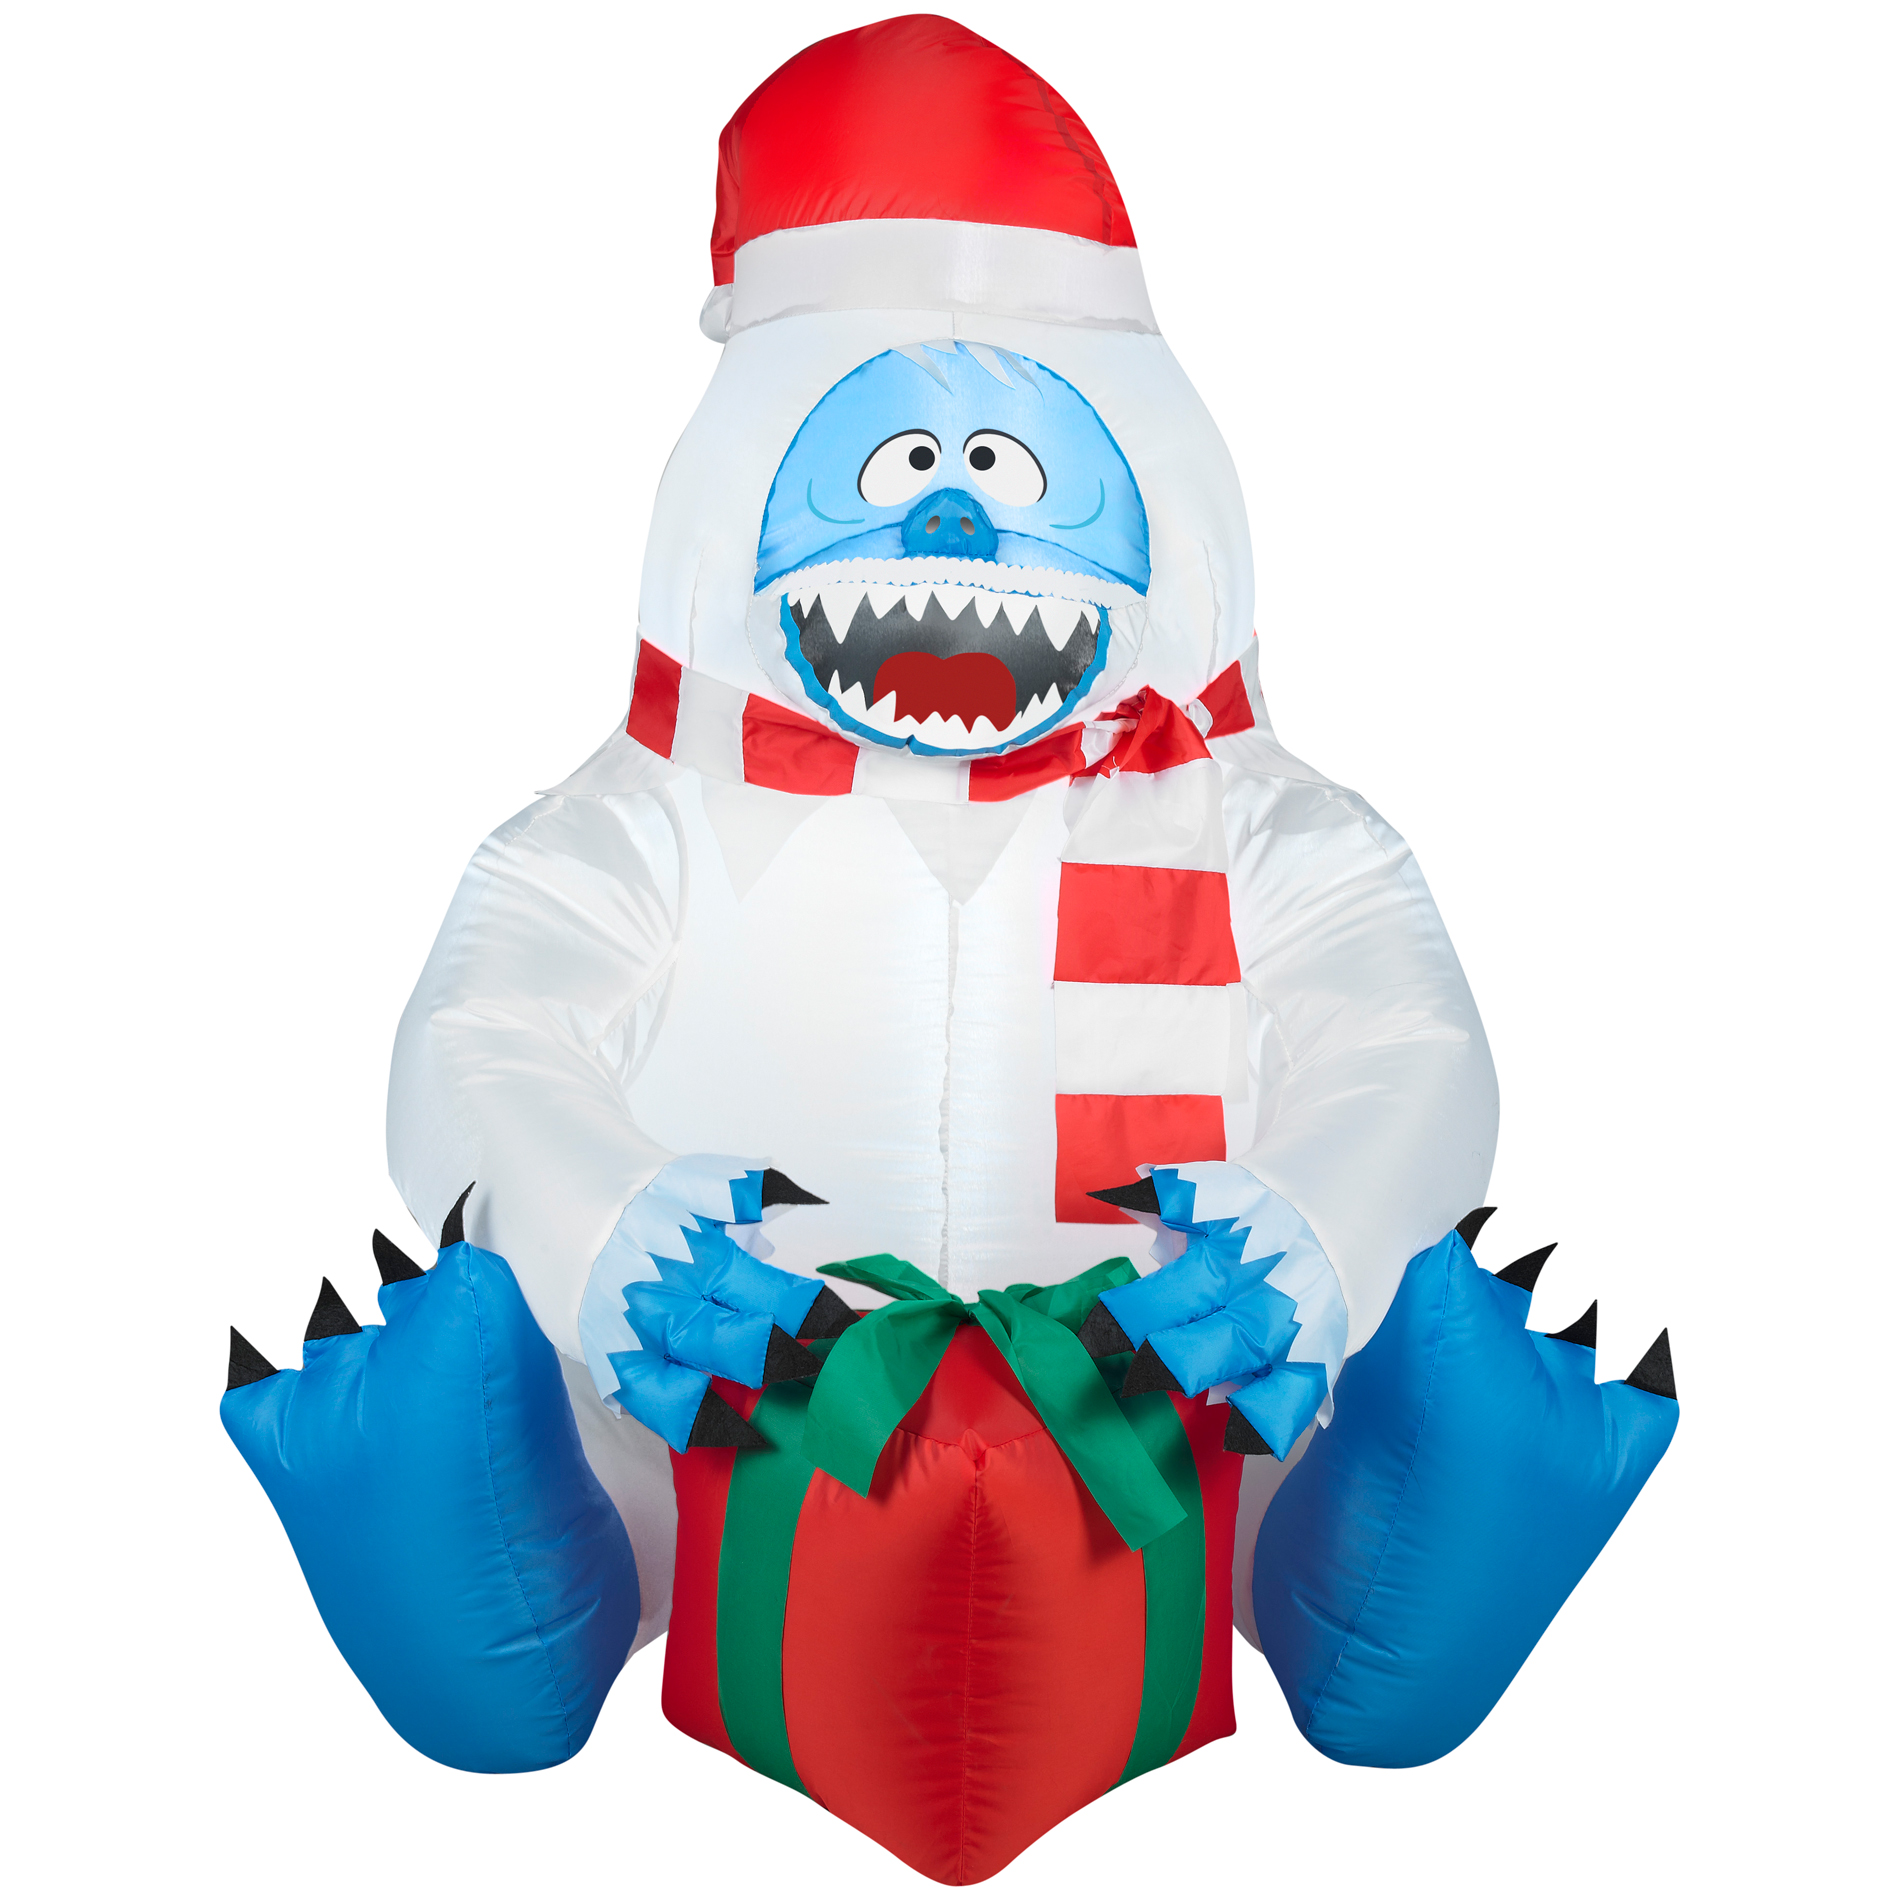 Abominable Snowman Outdoor Christmas Decorations